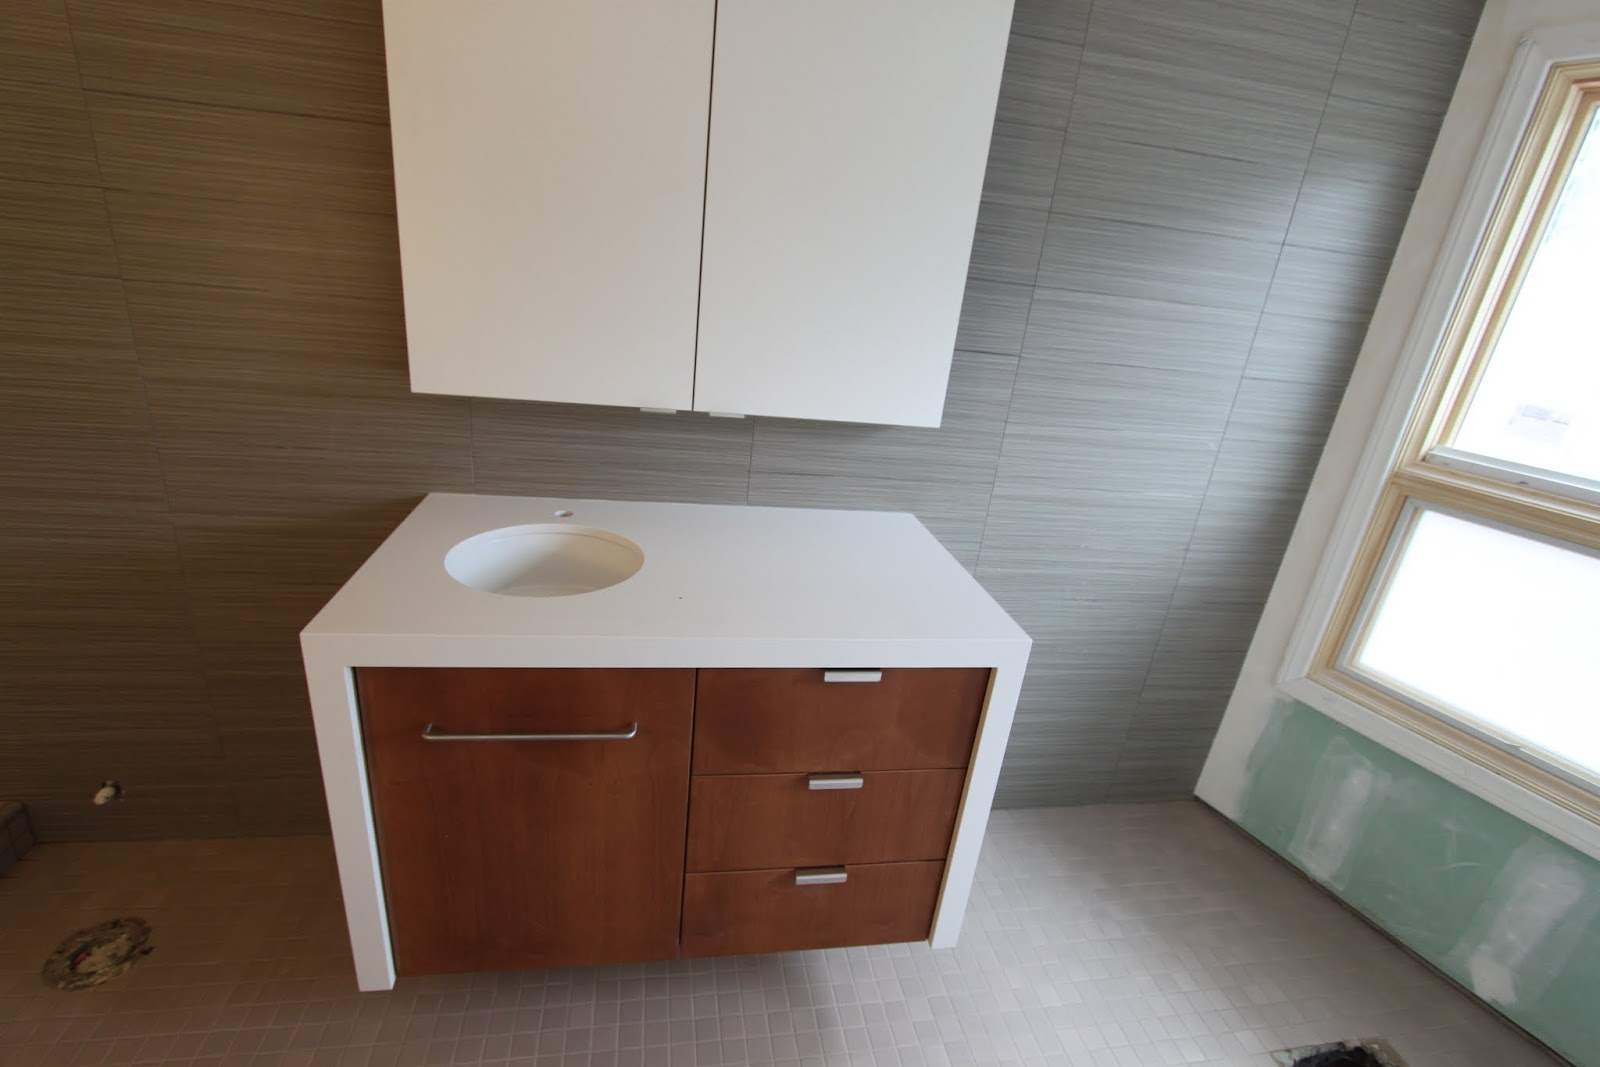 Kitchen Bath Remodel Gives Mid Century Home Modern Updates: Nearing End Of Construction Mid-century Modern Bathroom